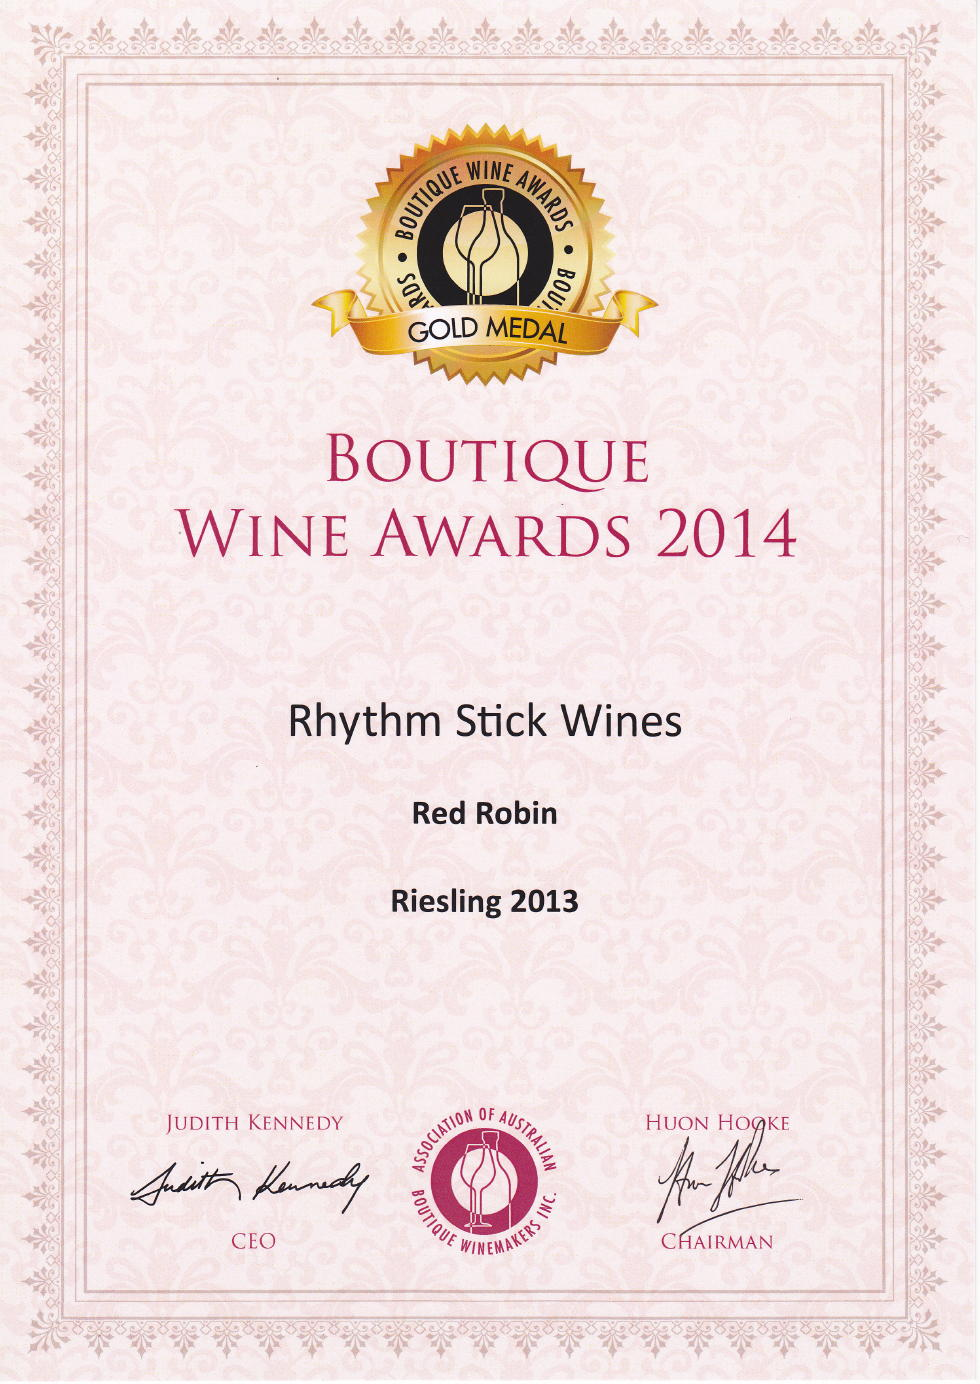 2014 Boutique Wine Awards